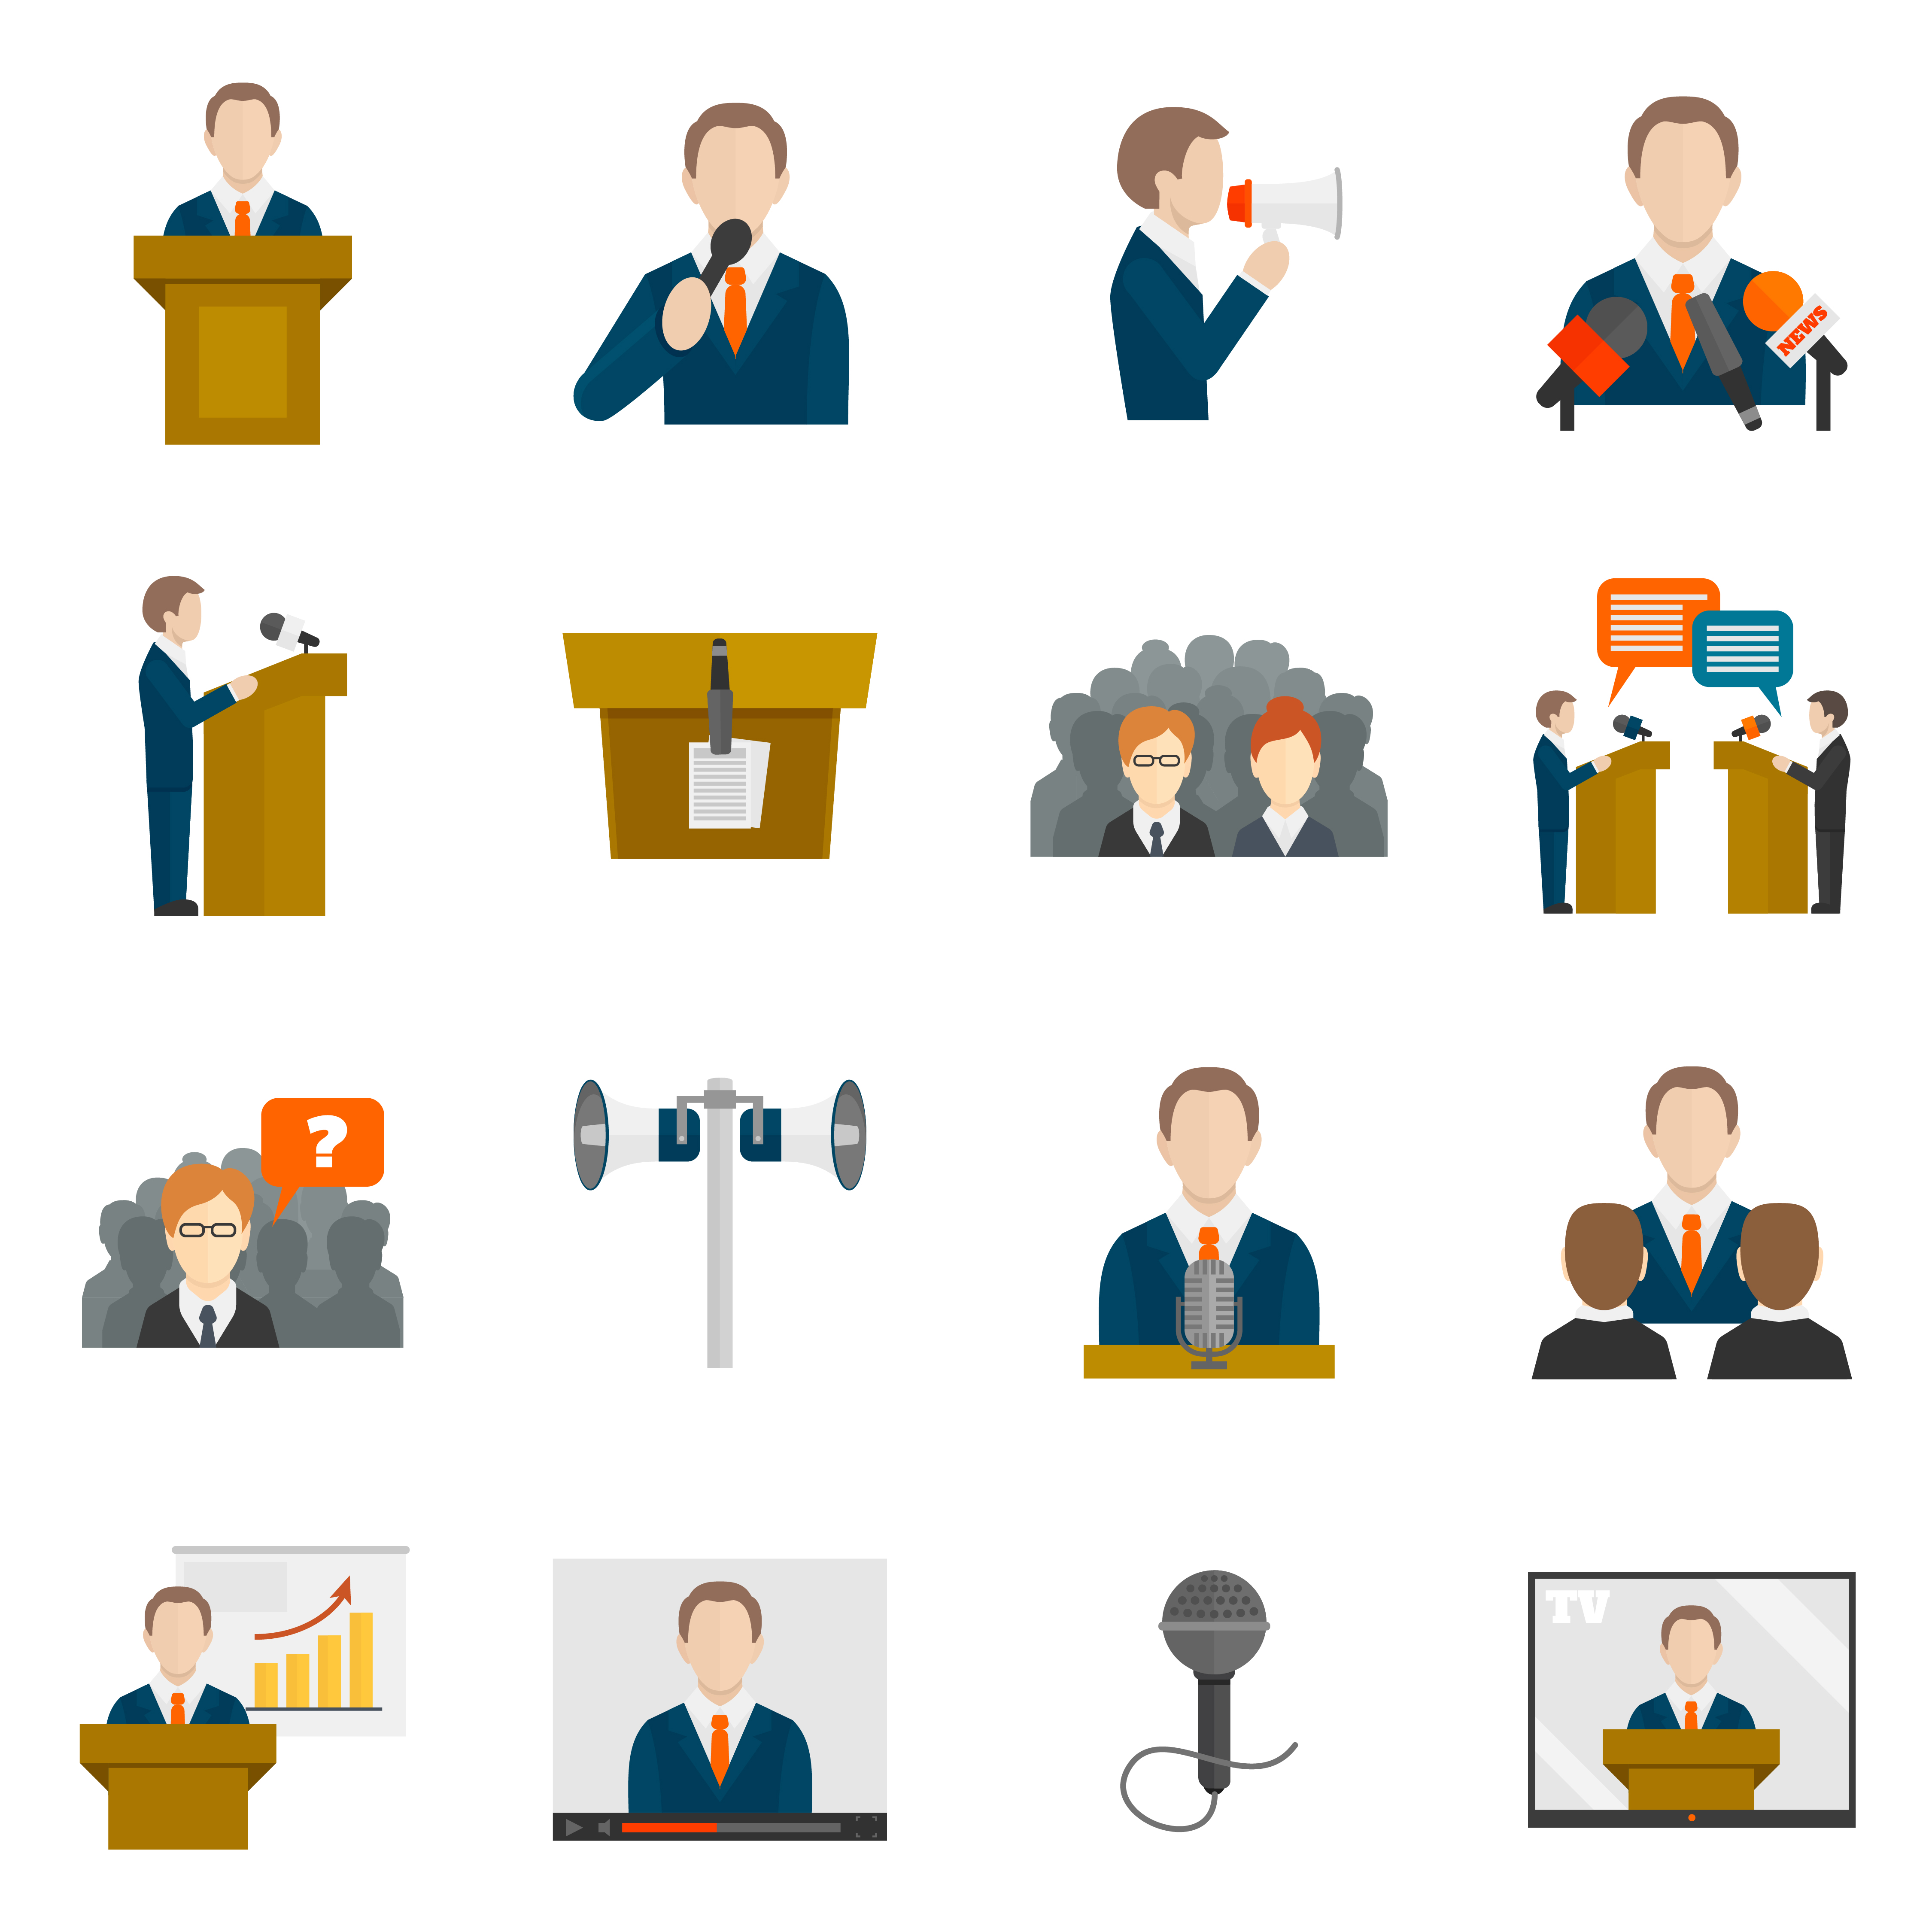 Public speaking icons - Download Free Vectors, Clipart ...